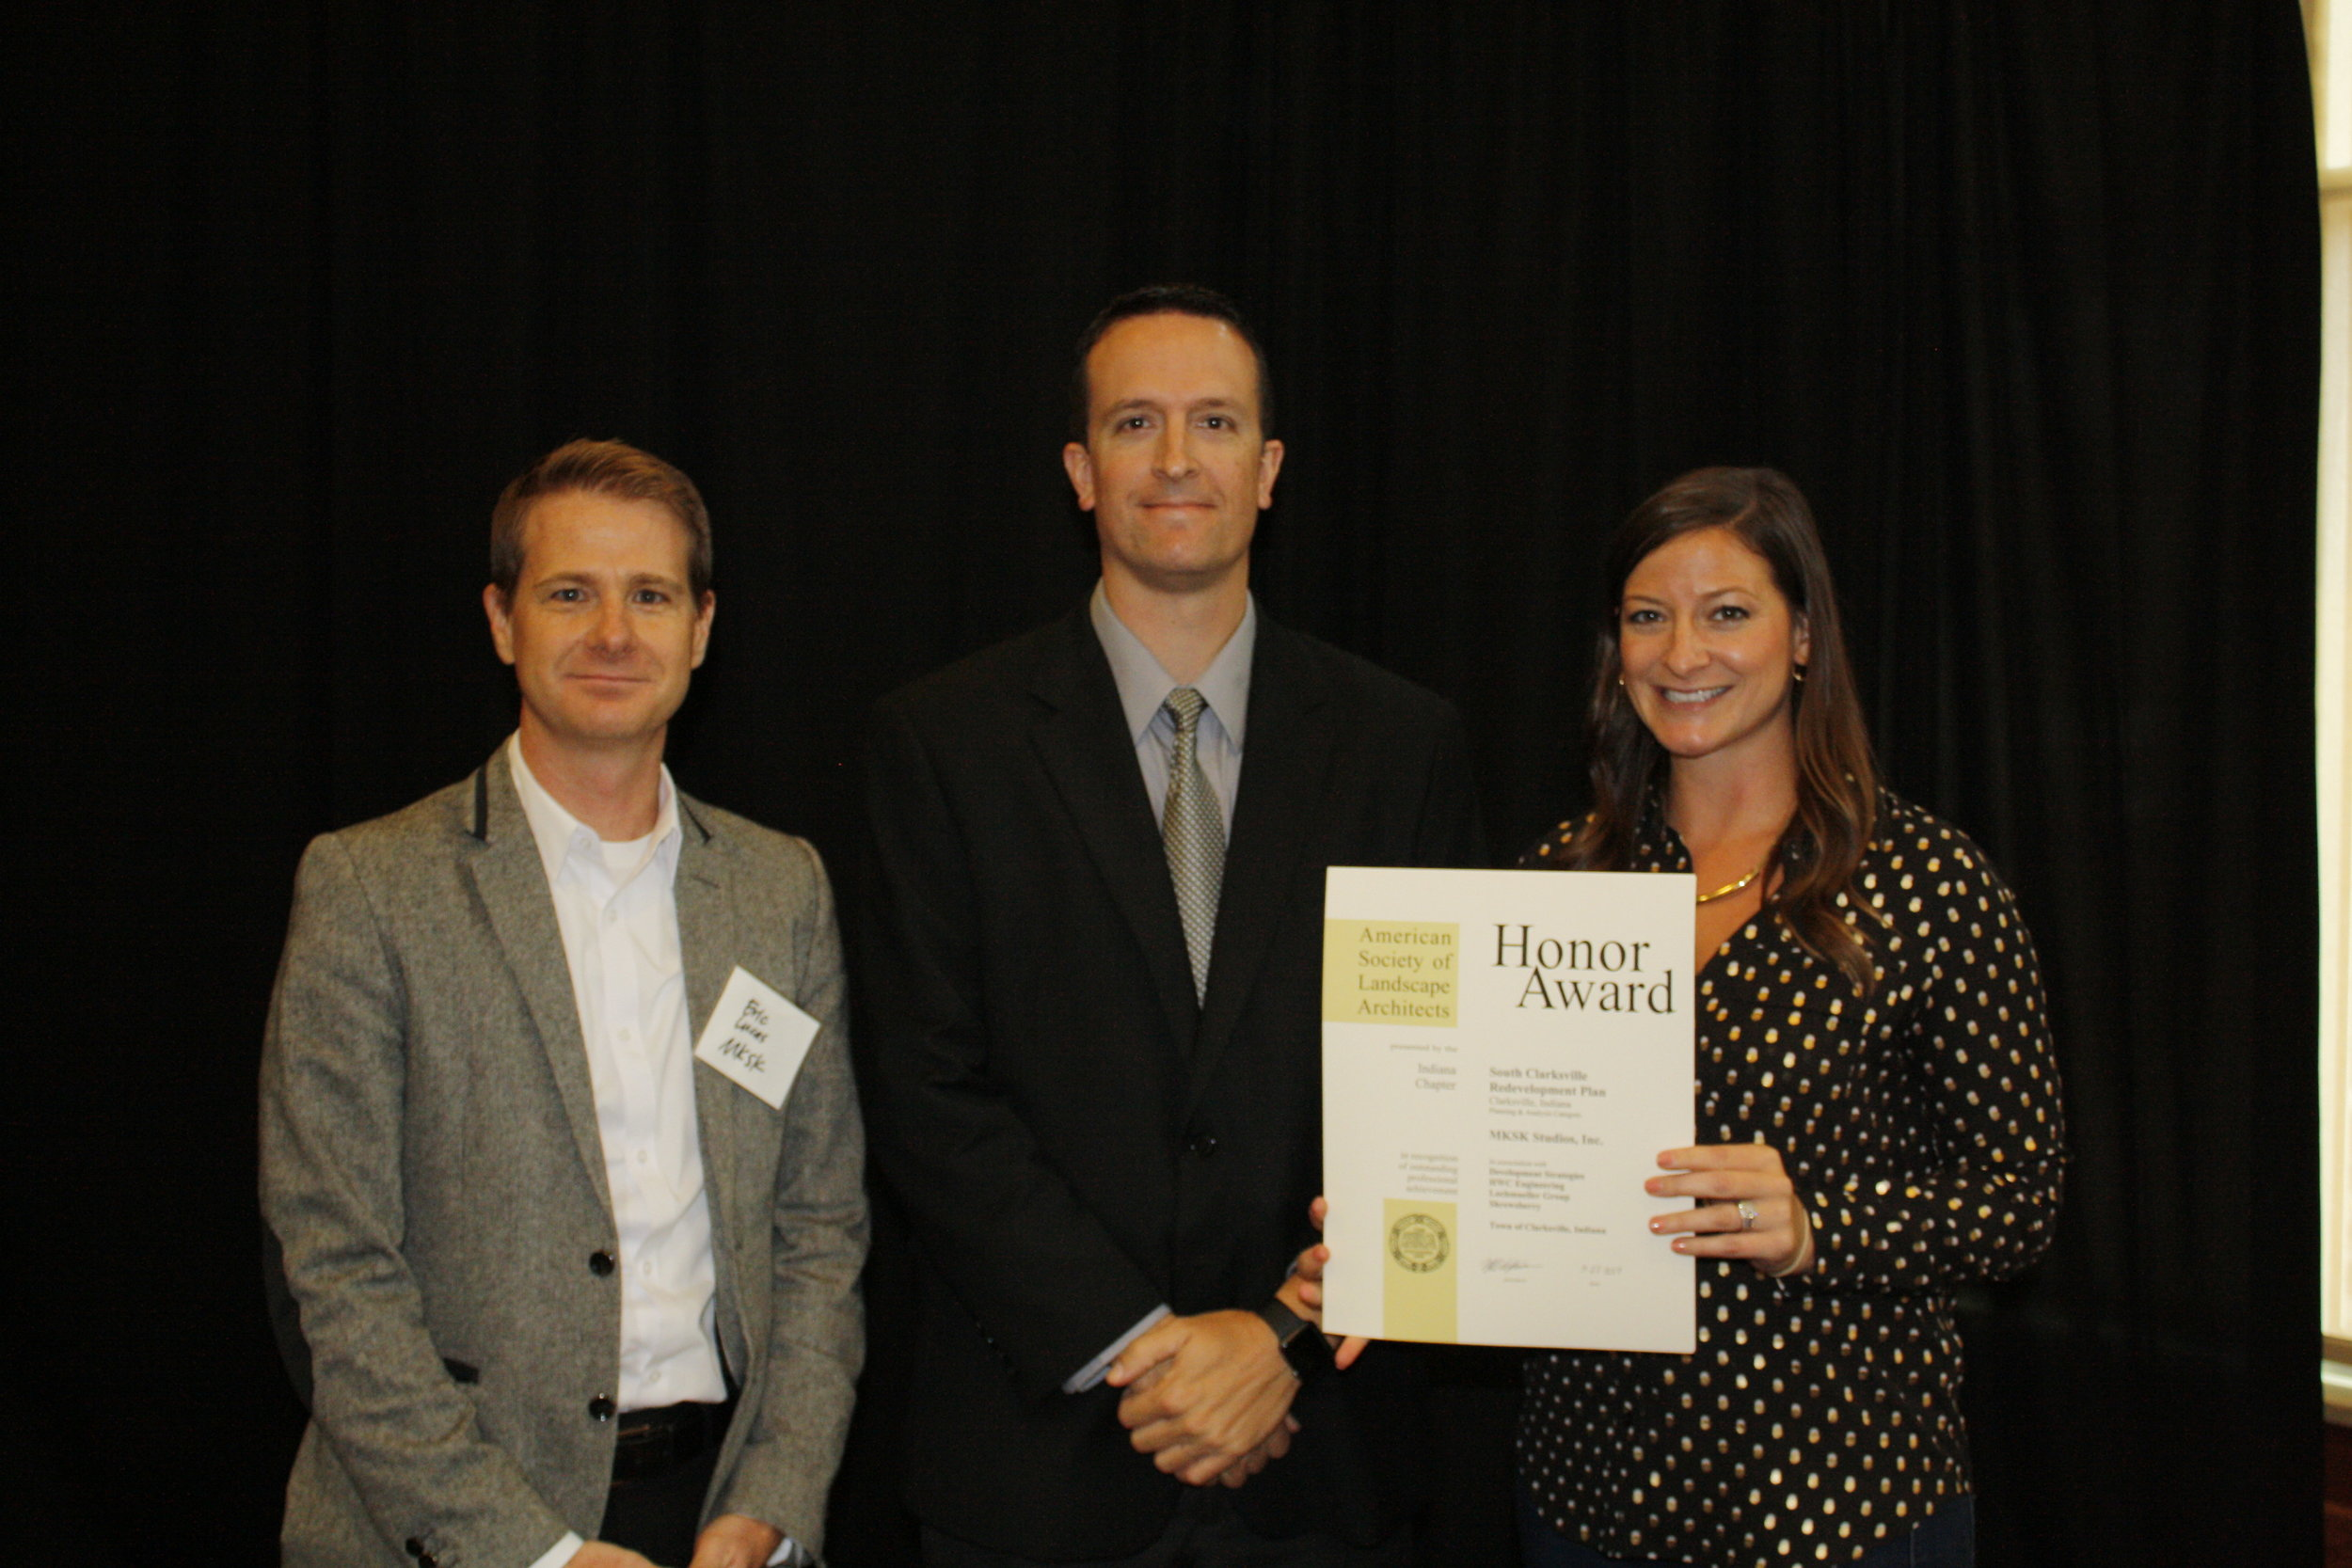 Eric (Principal Landscape Architect, MKSK) and Julie Barnard (Landscape Architect, MKSK) receive the Planning and Analysis Honor Award from Bill Kincius (INASLA President), for the South Clarksville Redevelopment Plan